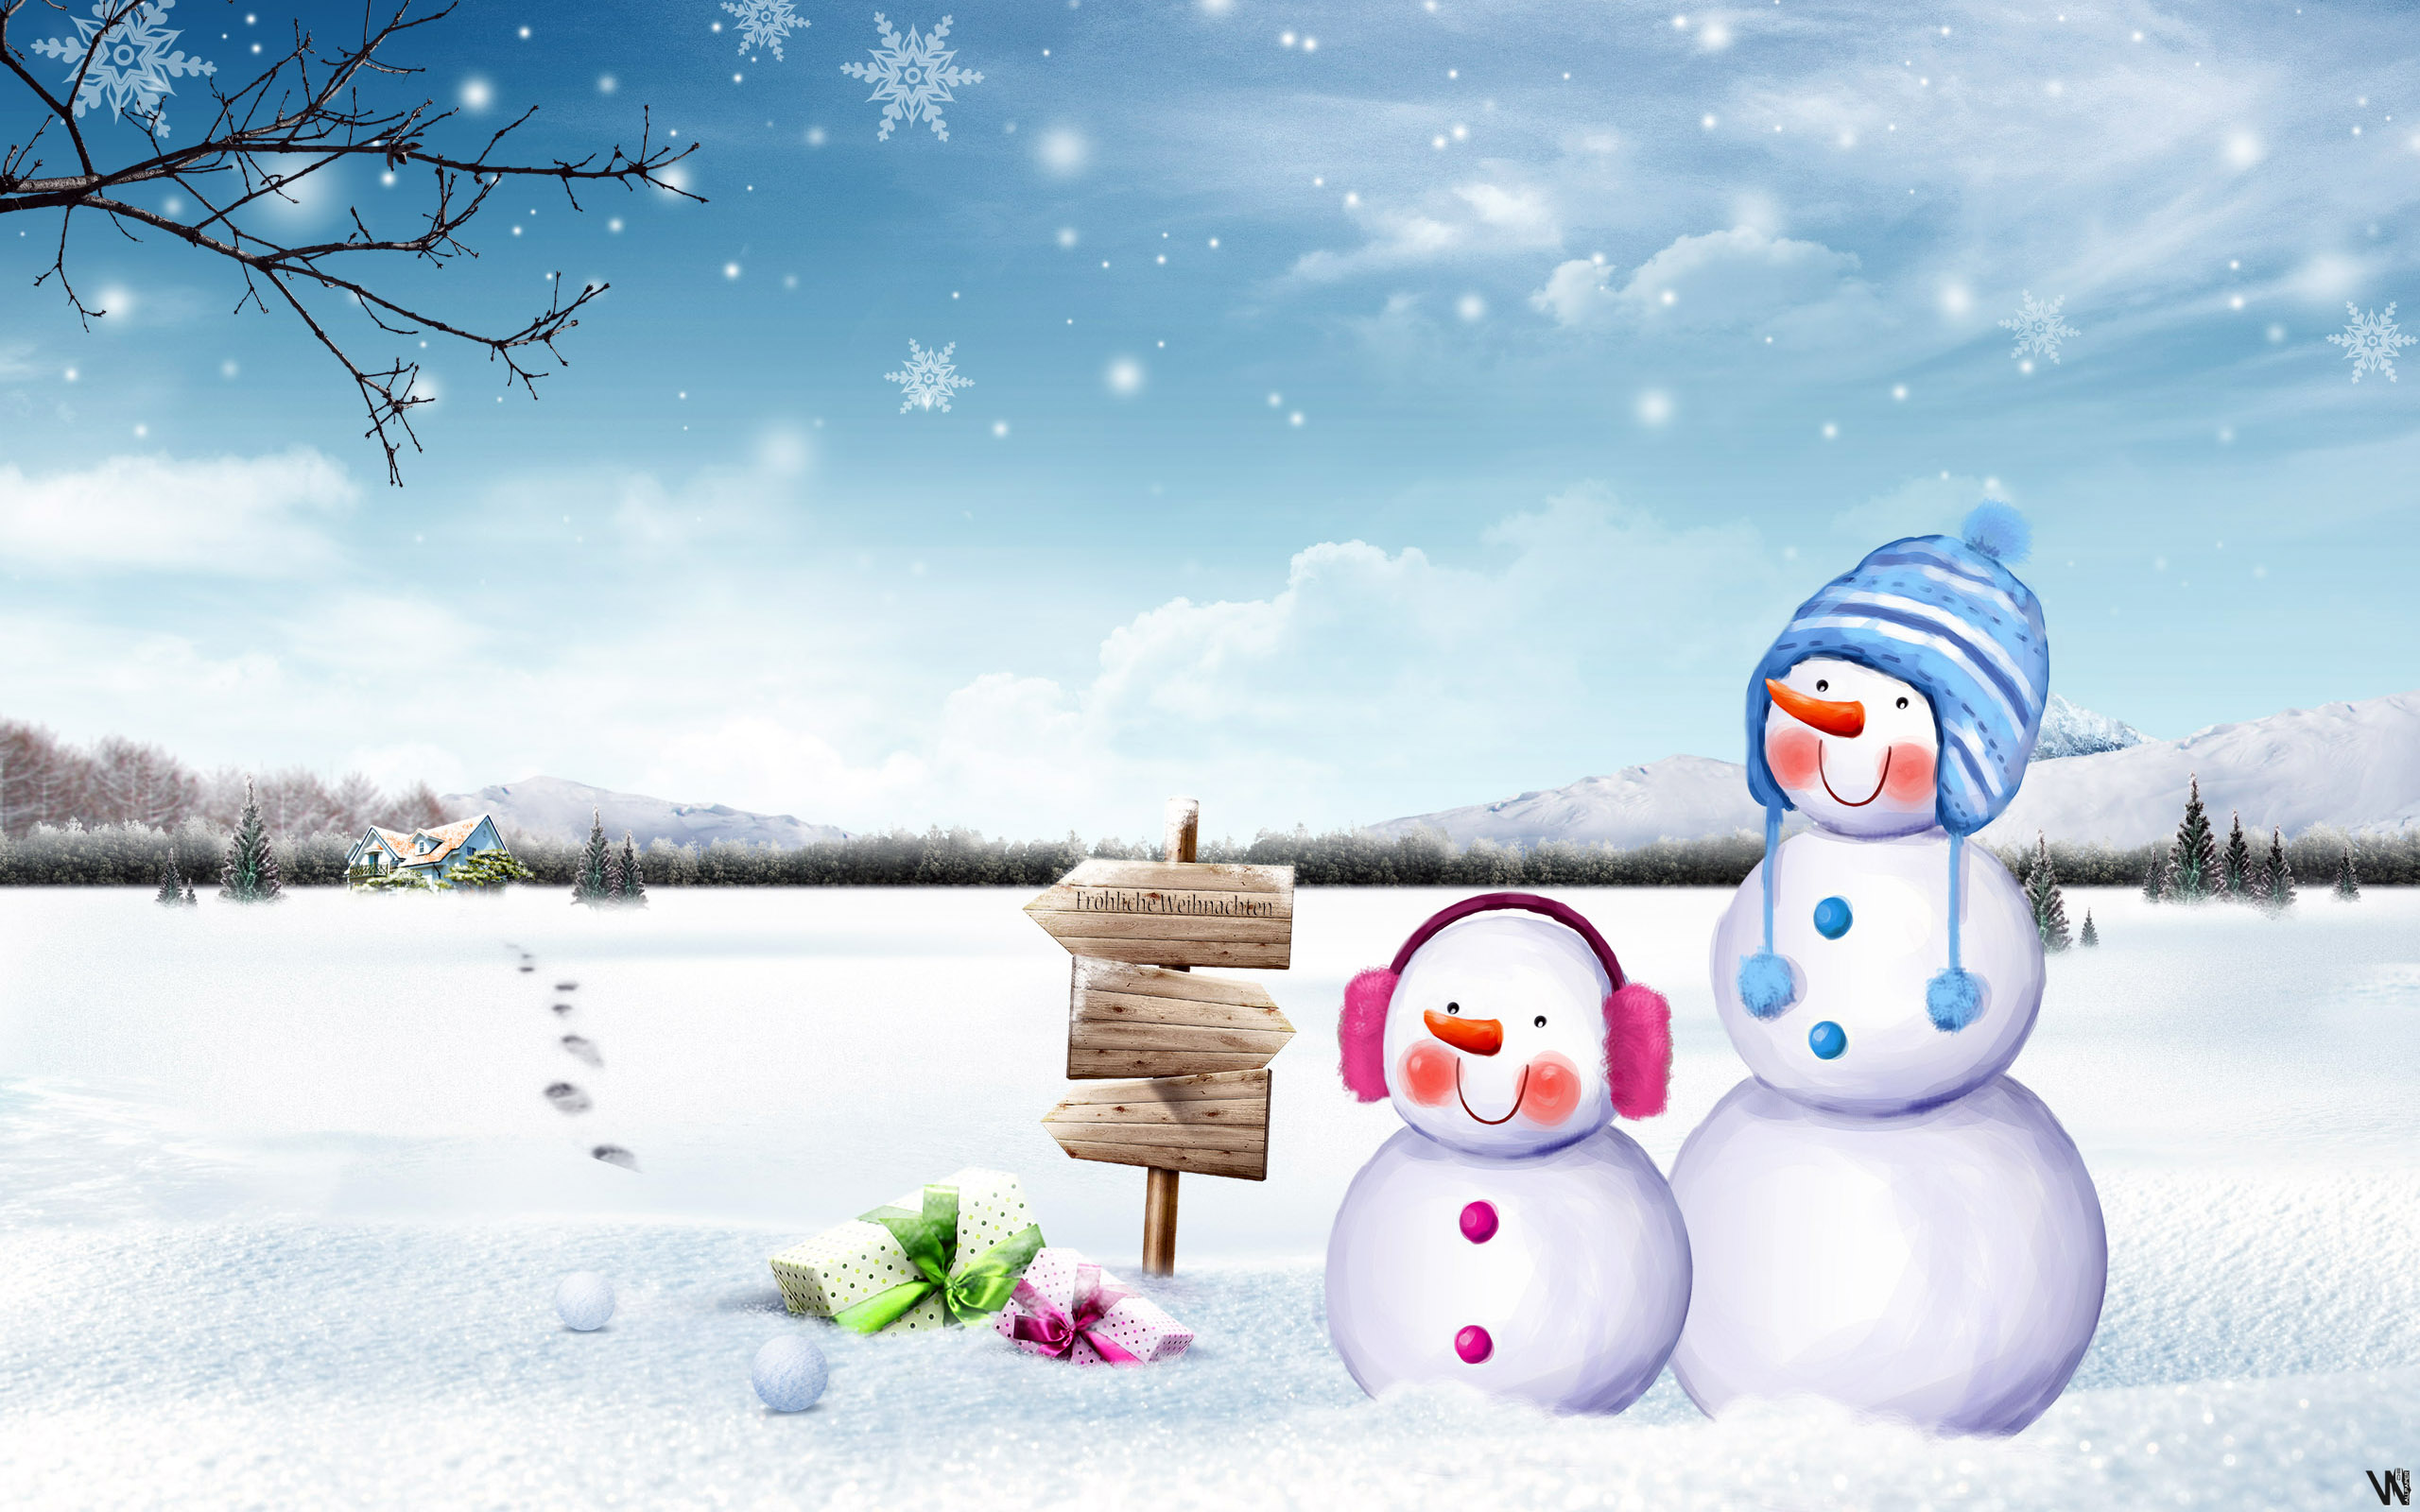 schattig sneeuwmannen wallpaper   ForWallpapercom 2560x1600